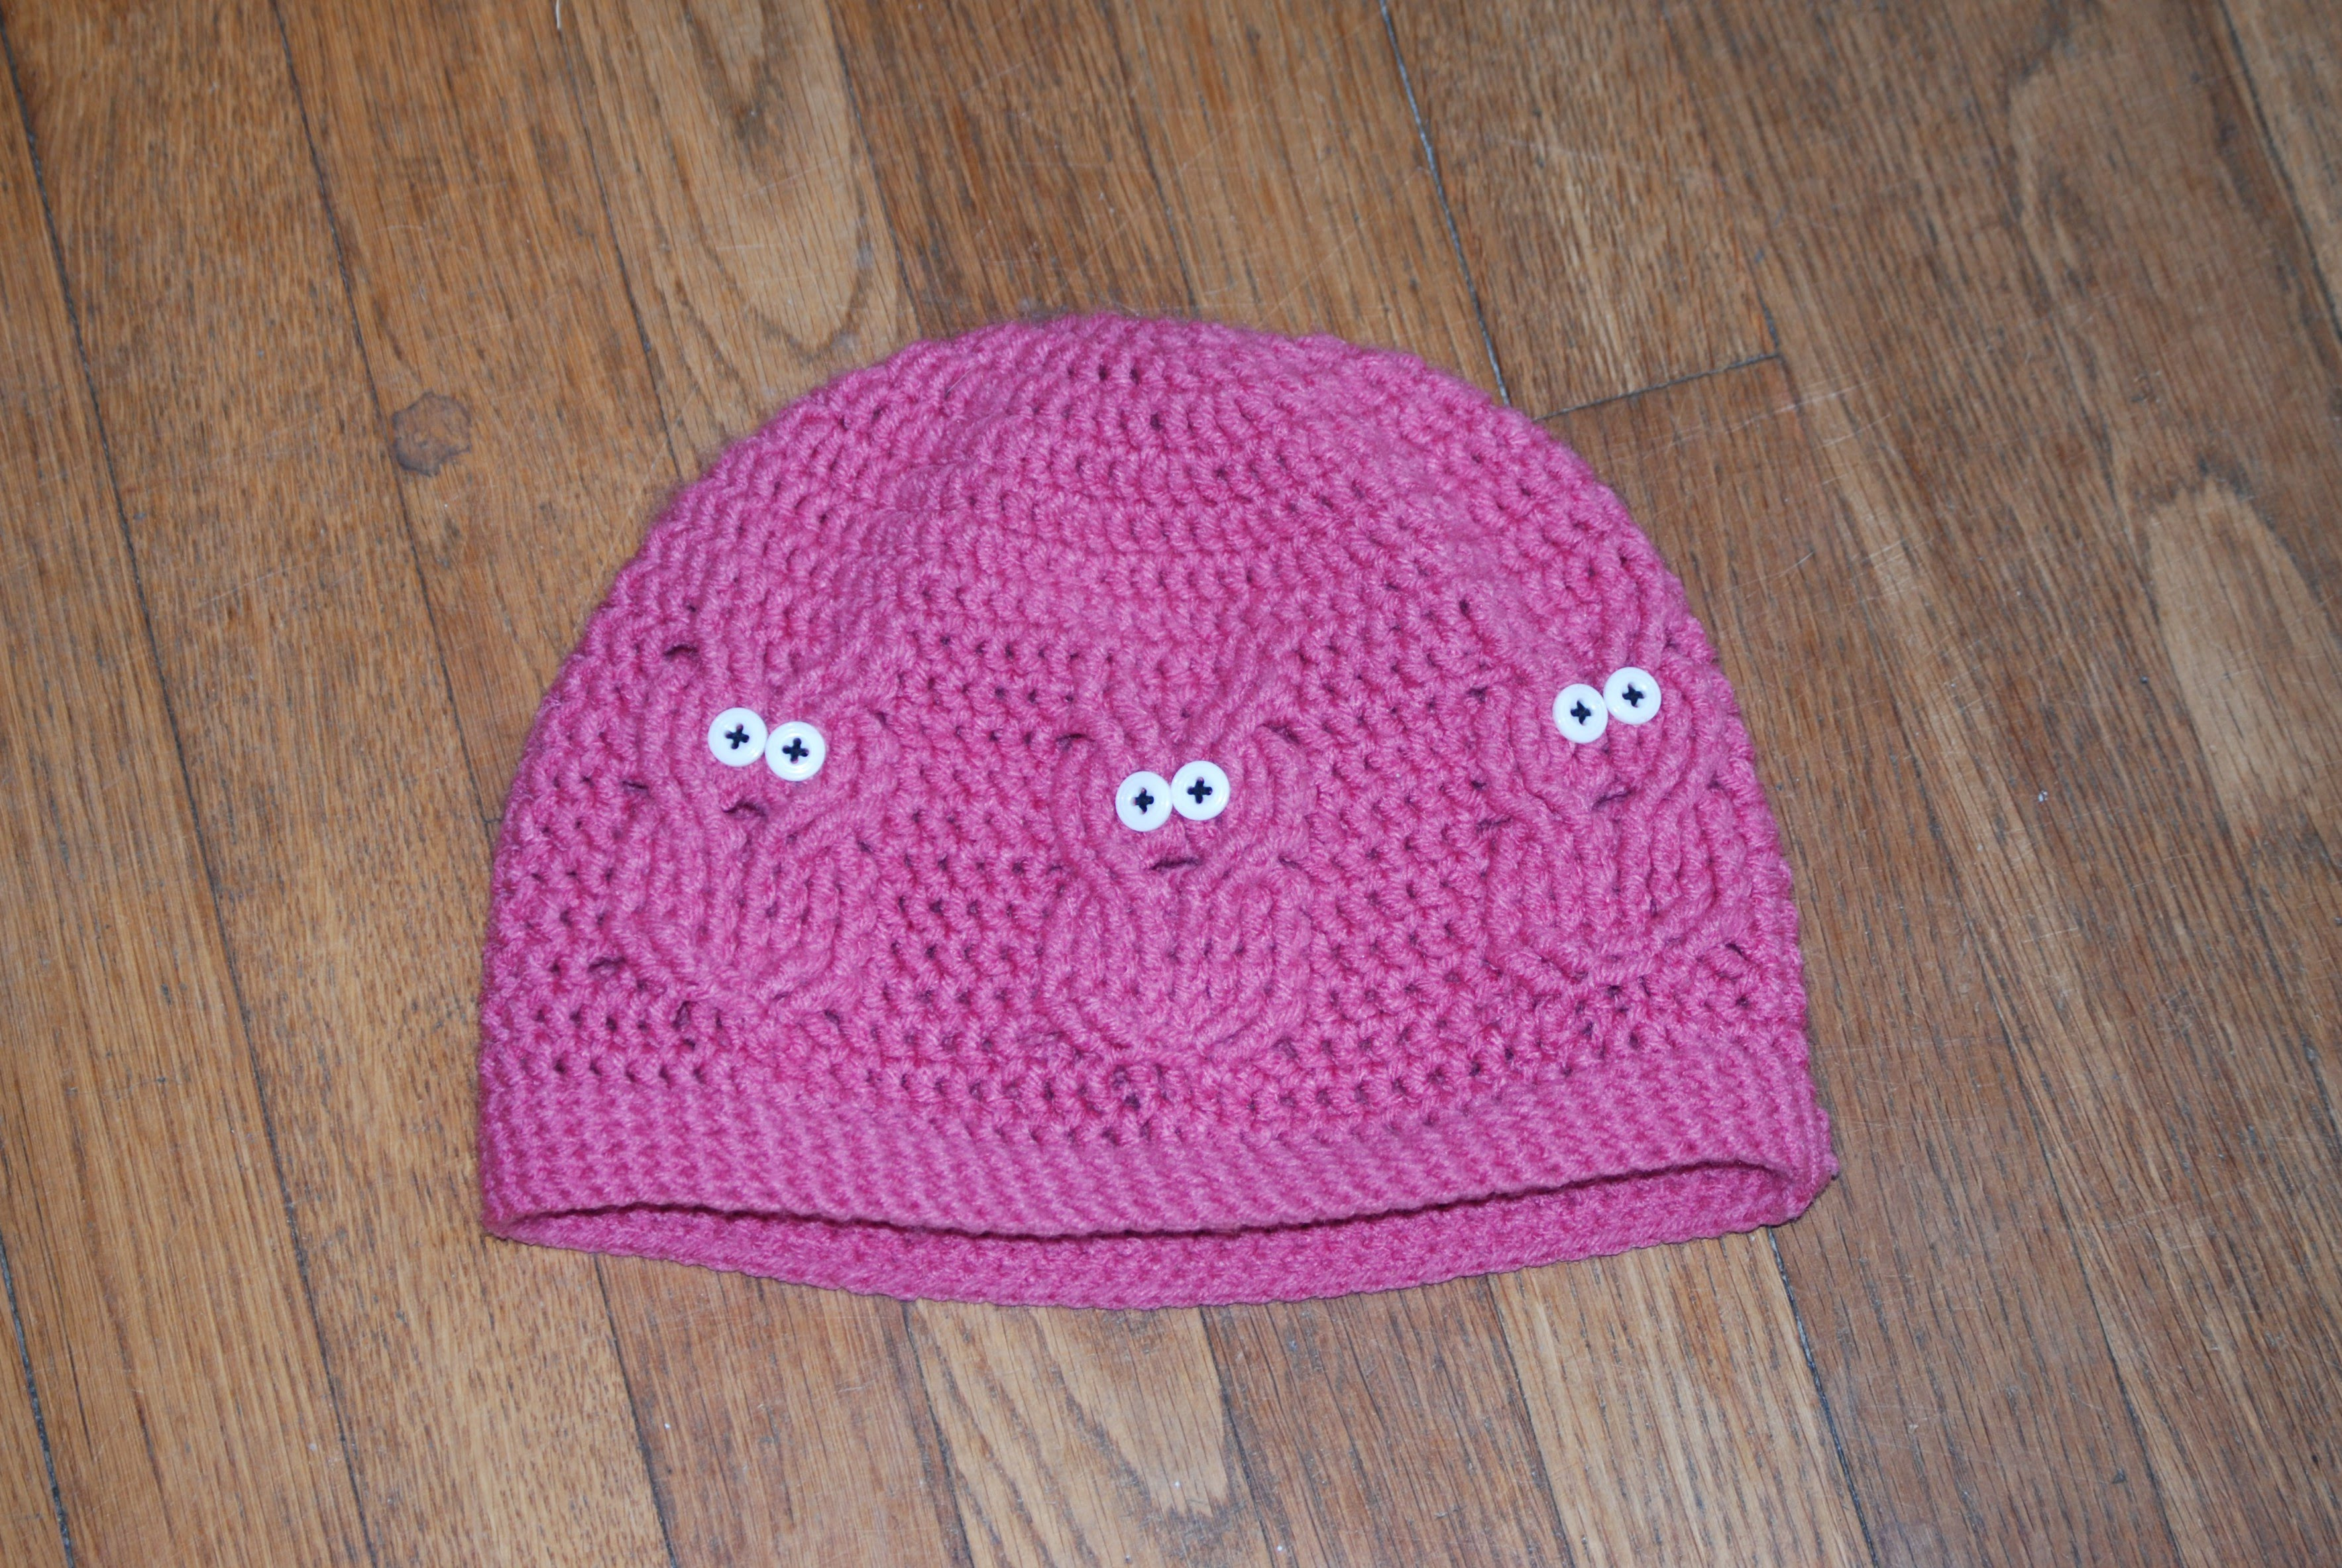 This is a free double-crochet worsted-weight ( 4 weight) hat 4ccca3f6c43